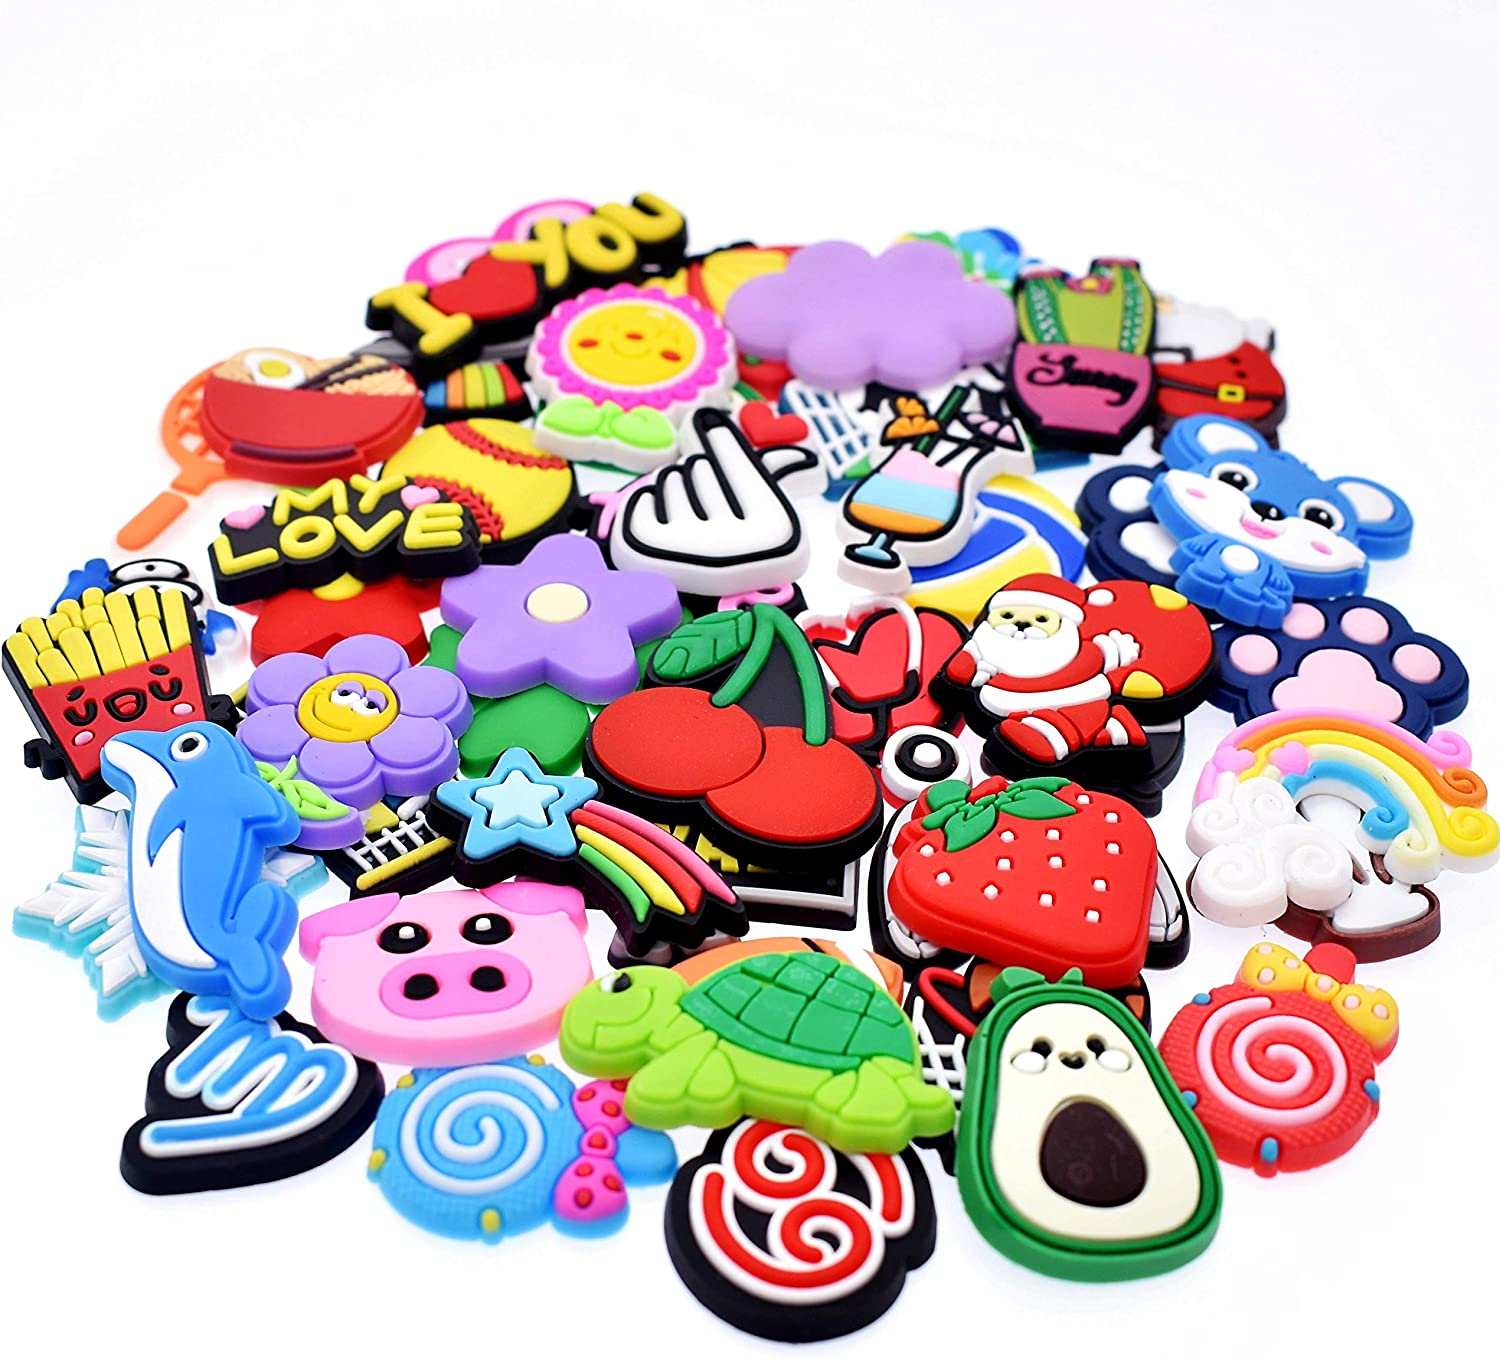 30,50,70,100,150,200pcs Random Different Shoe Charms fit Sandals Whirstbands Kids Girls Gifts